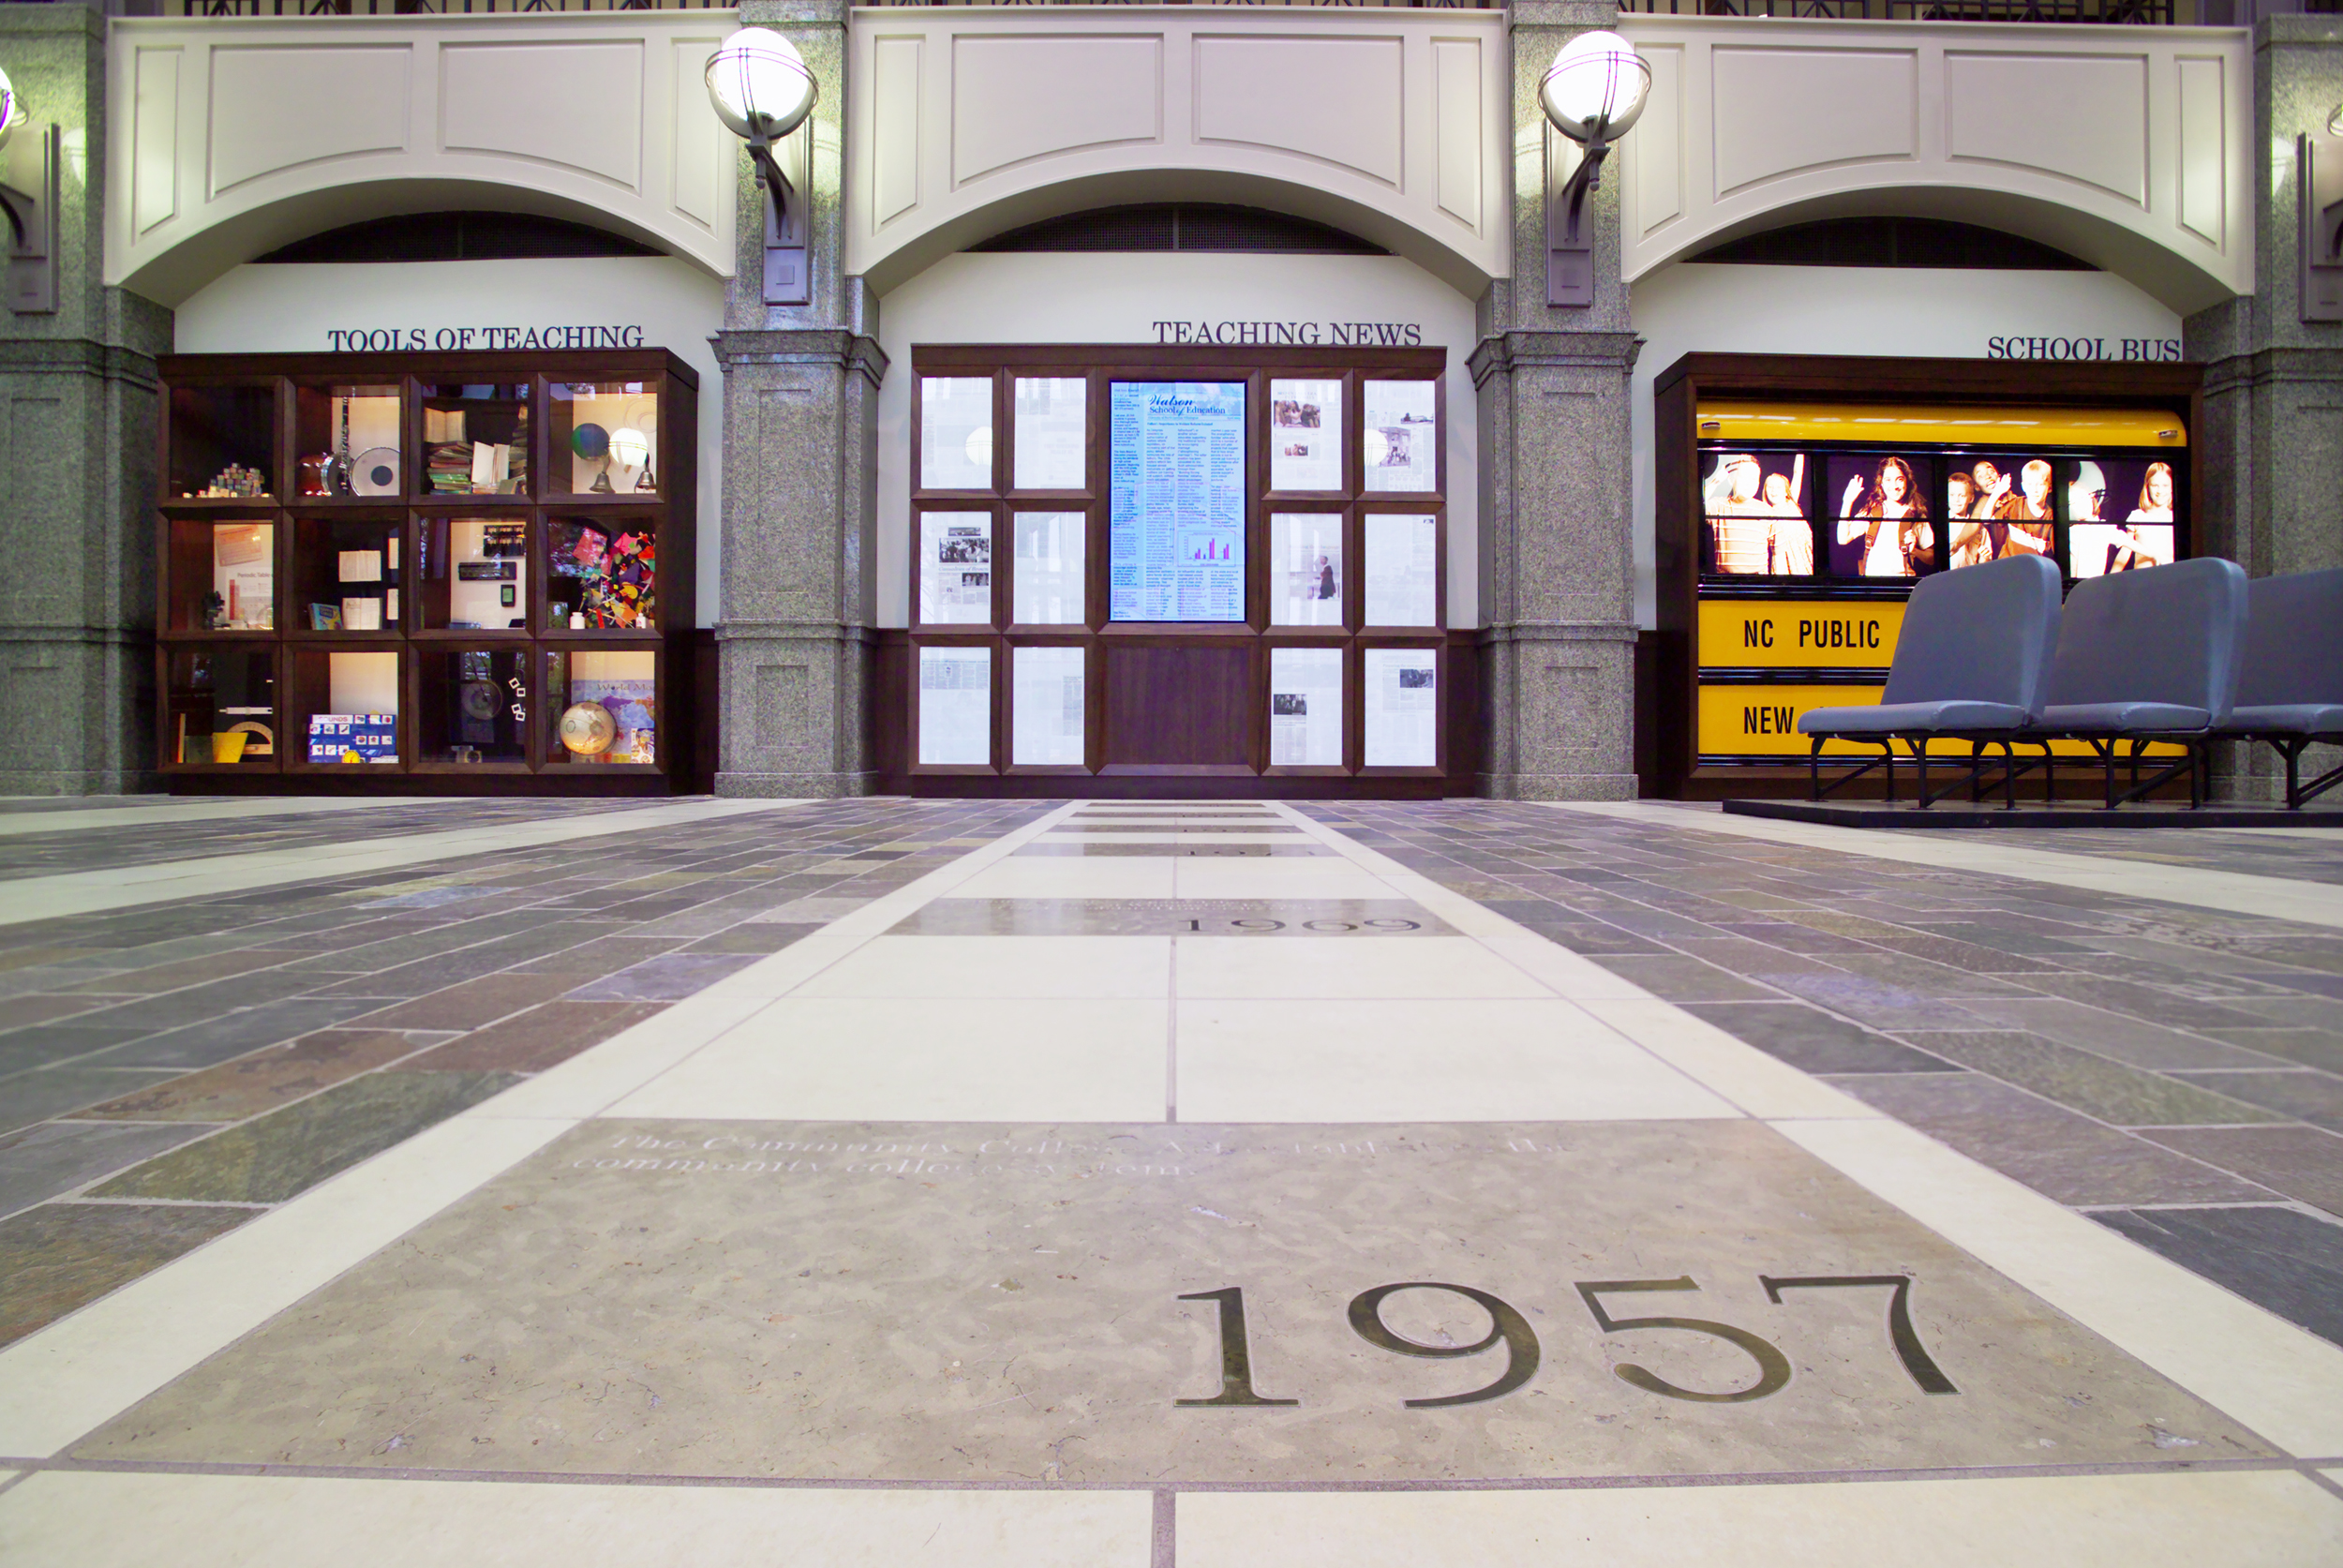 Project image 3 for Teacher's Legacy Hall, University of North Carolina, Wilmington